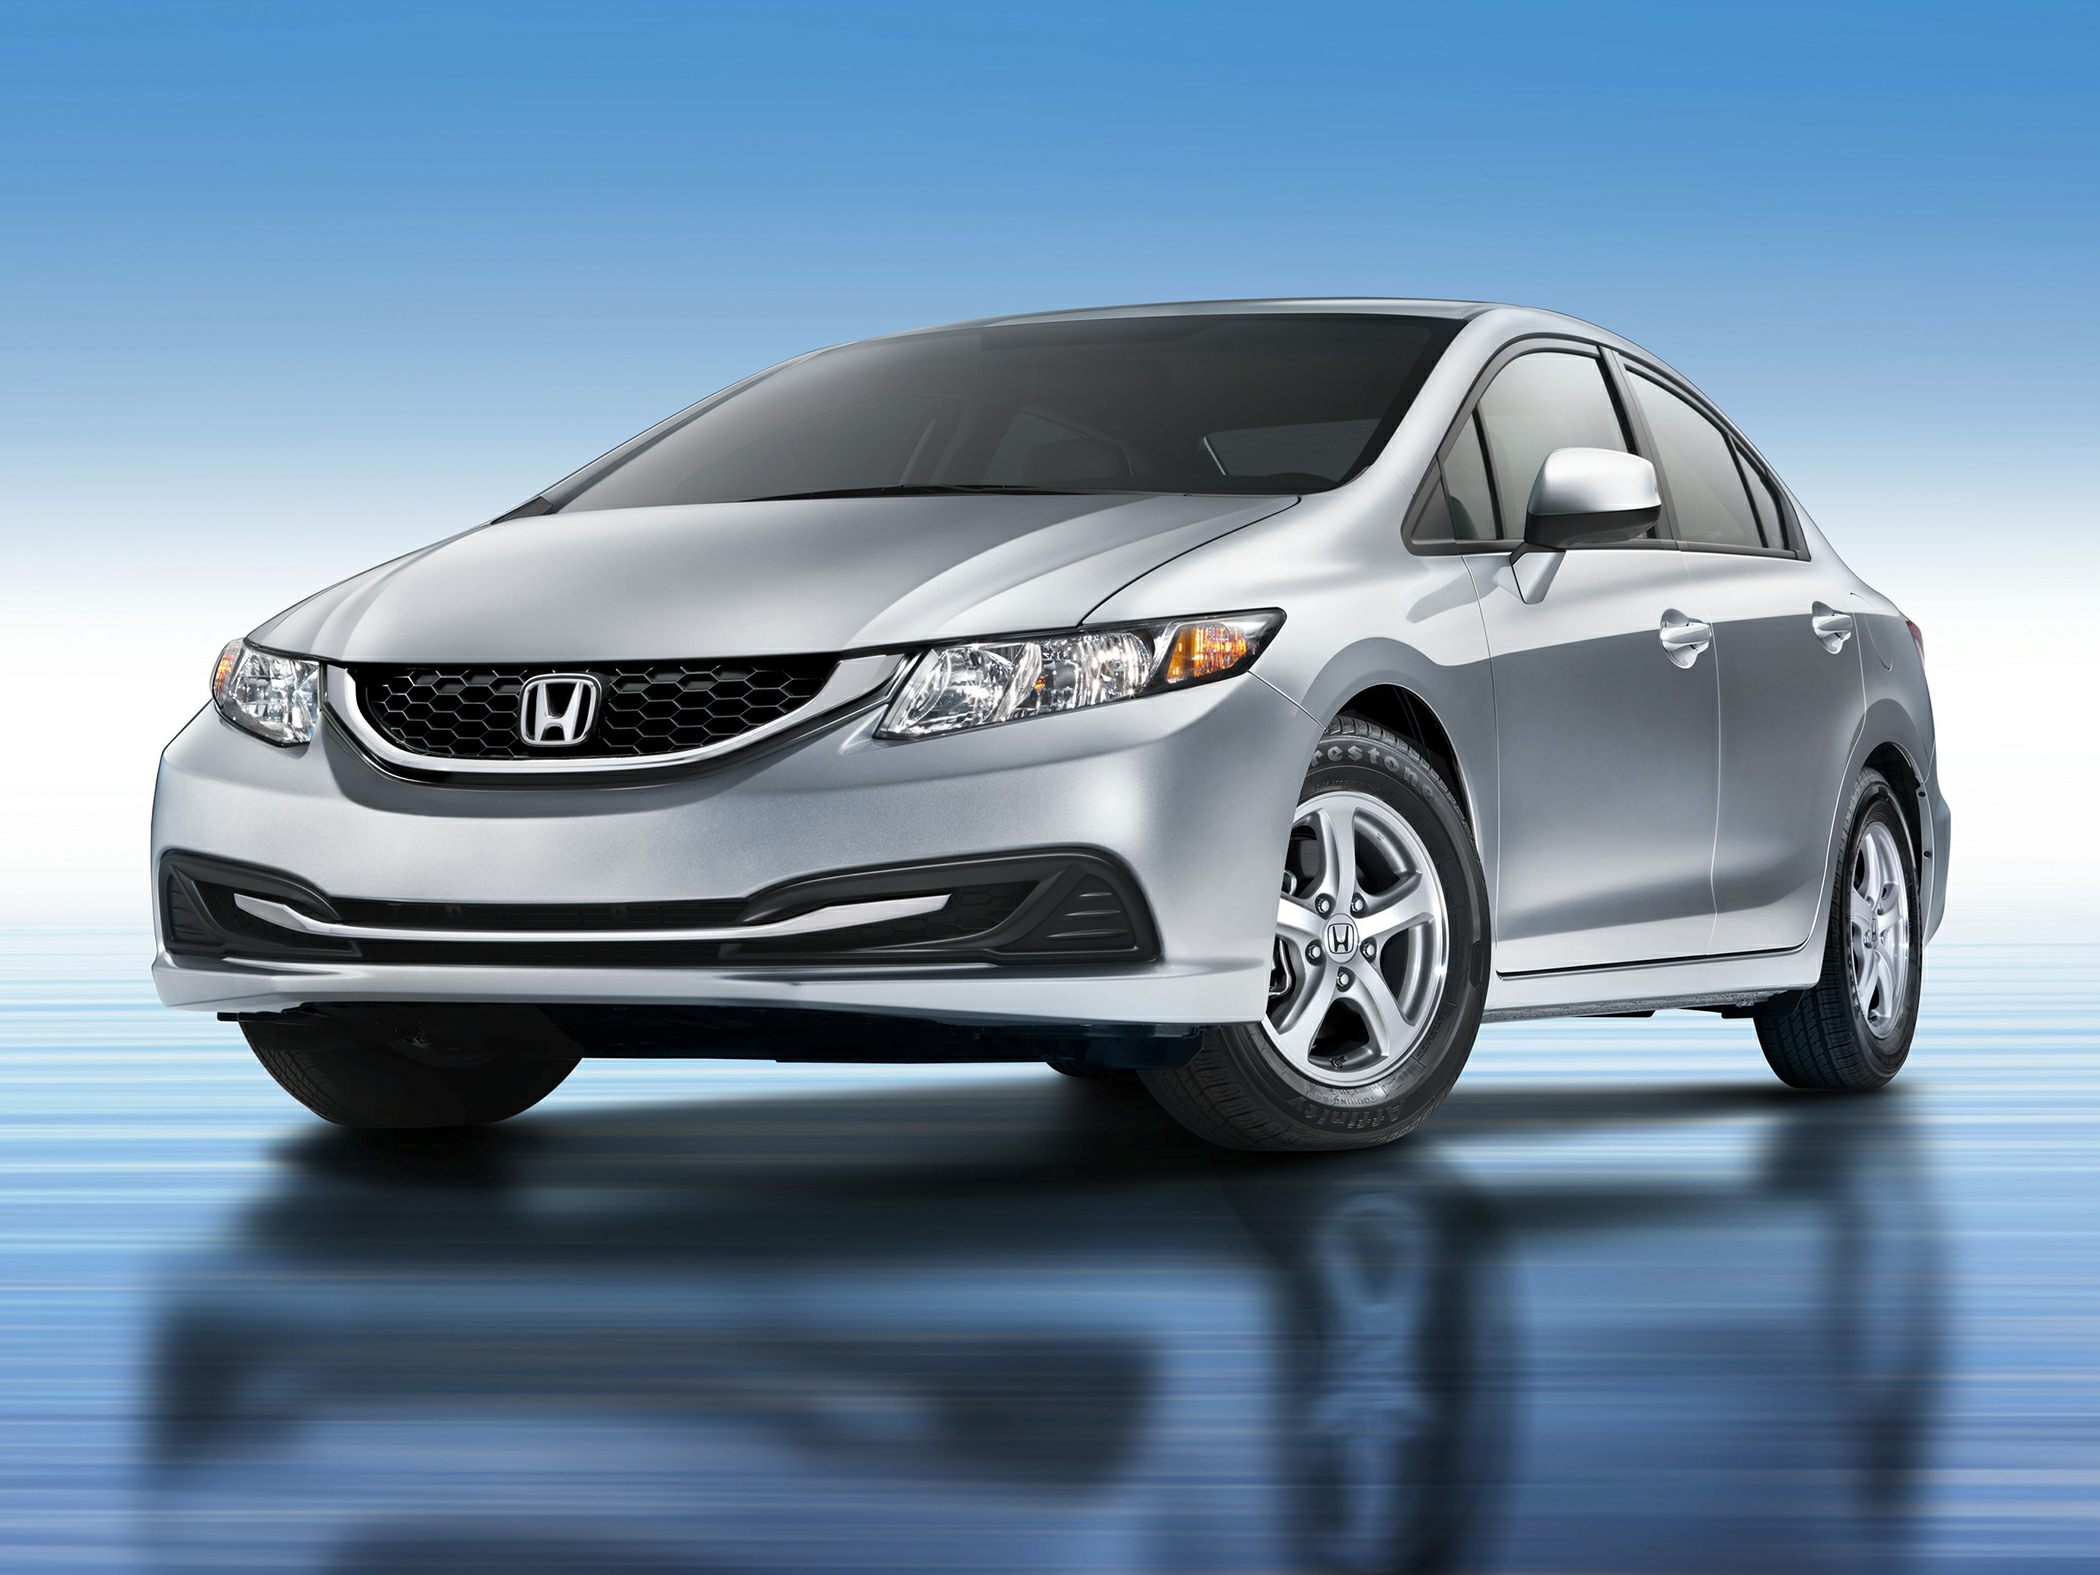 2014 Honda Civic Glamour